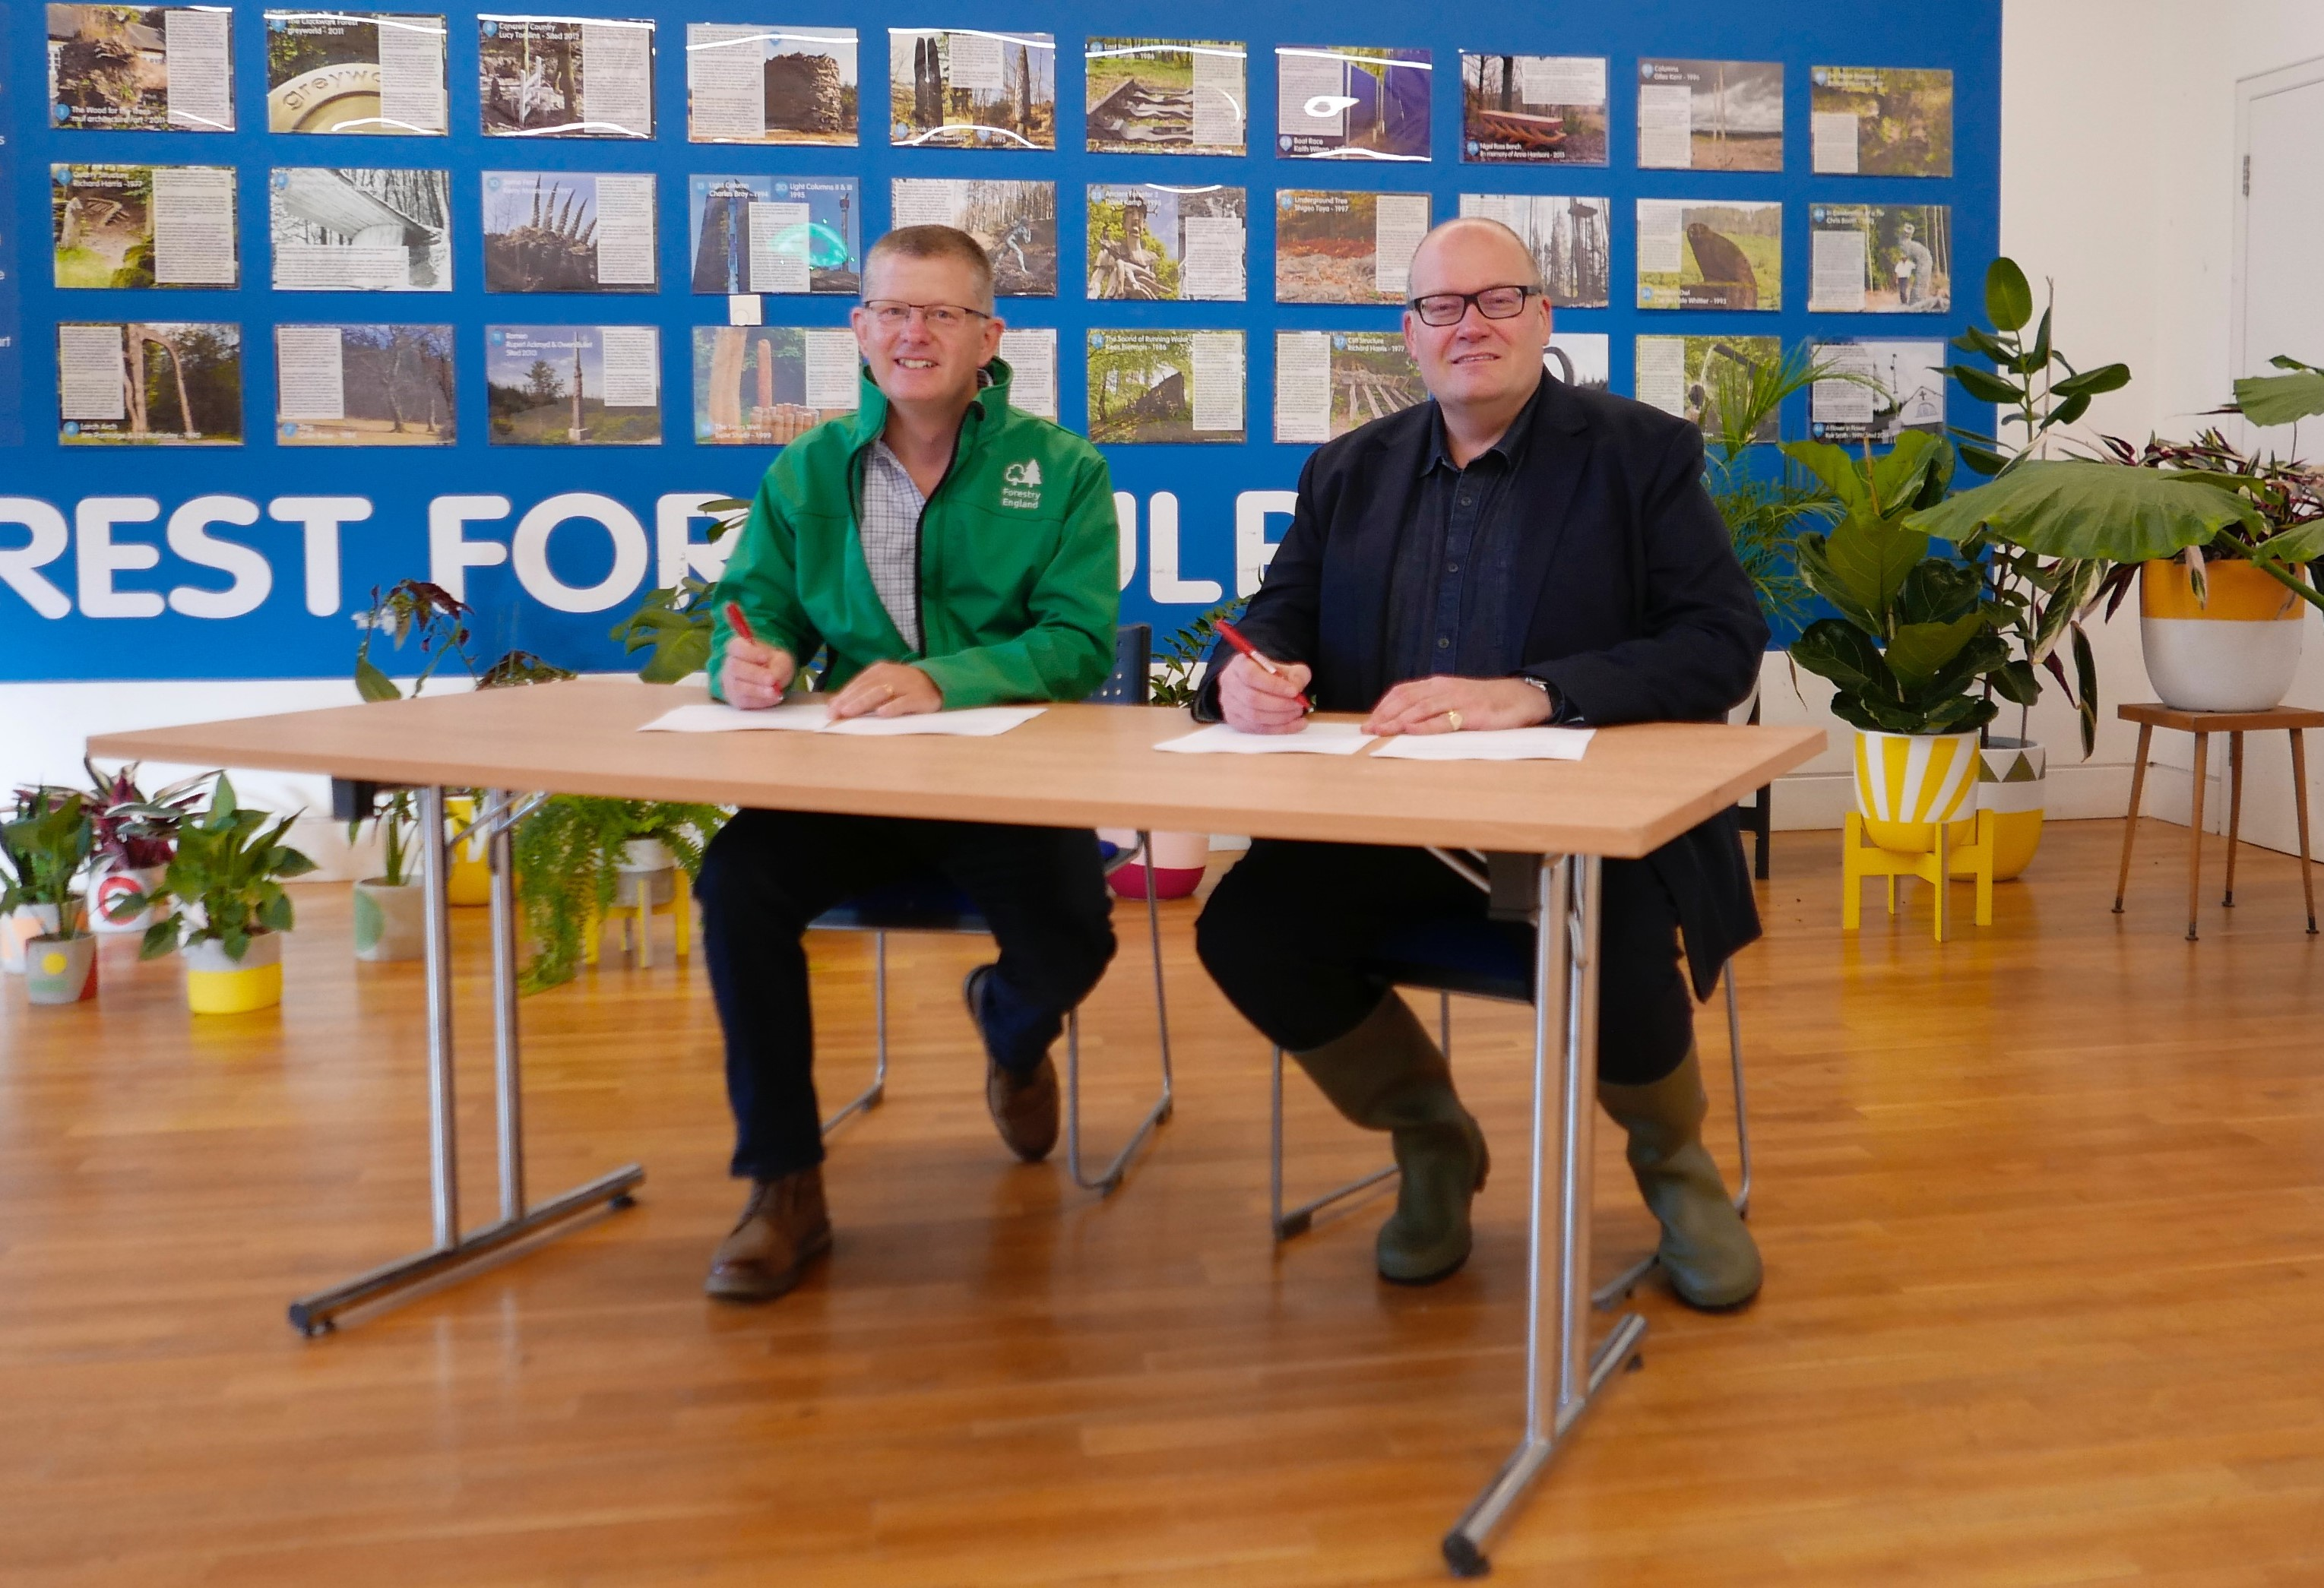 A photograph of Mike Seddon and Darren Henley sat at a table. They are smiling, and each hold a pen - suggesting they have just signed a document.